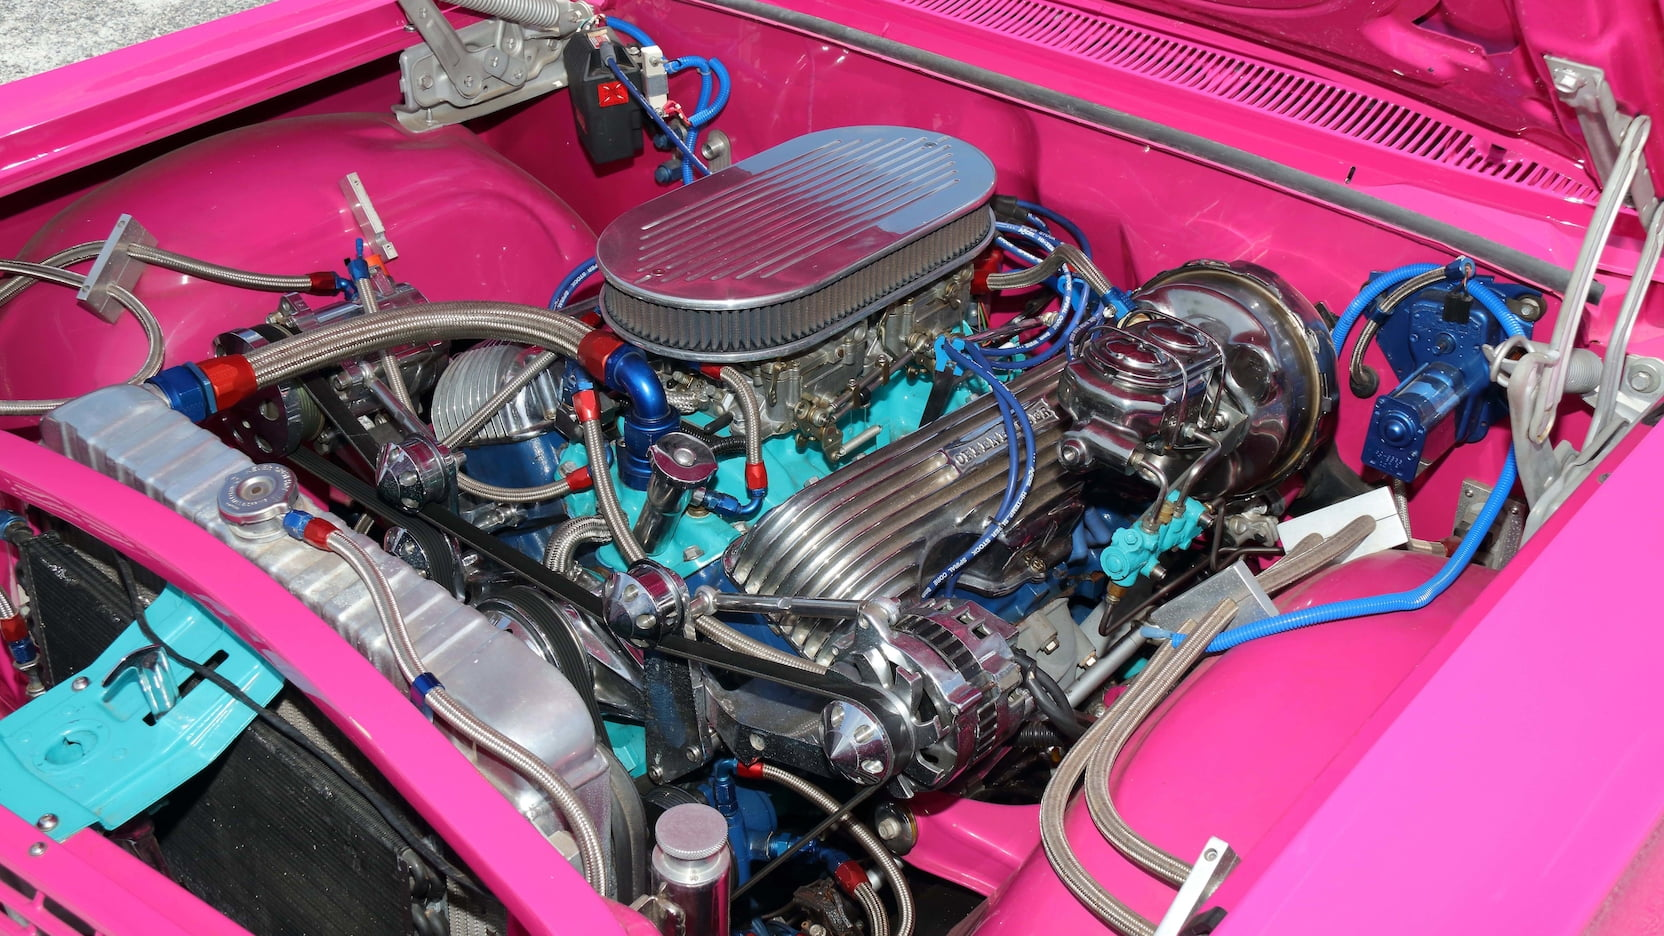 1963 Chevrolet Biscayne engine